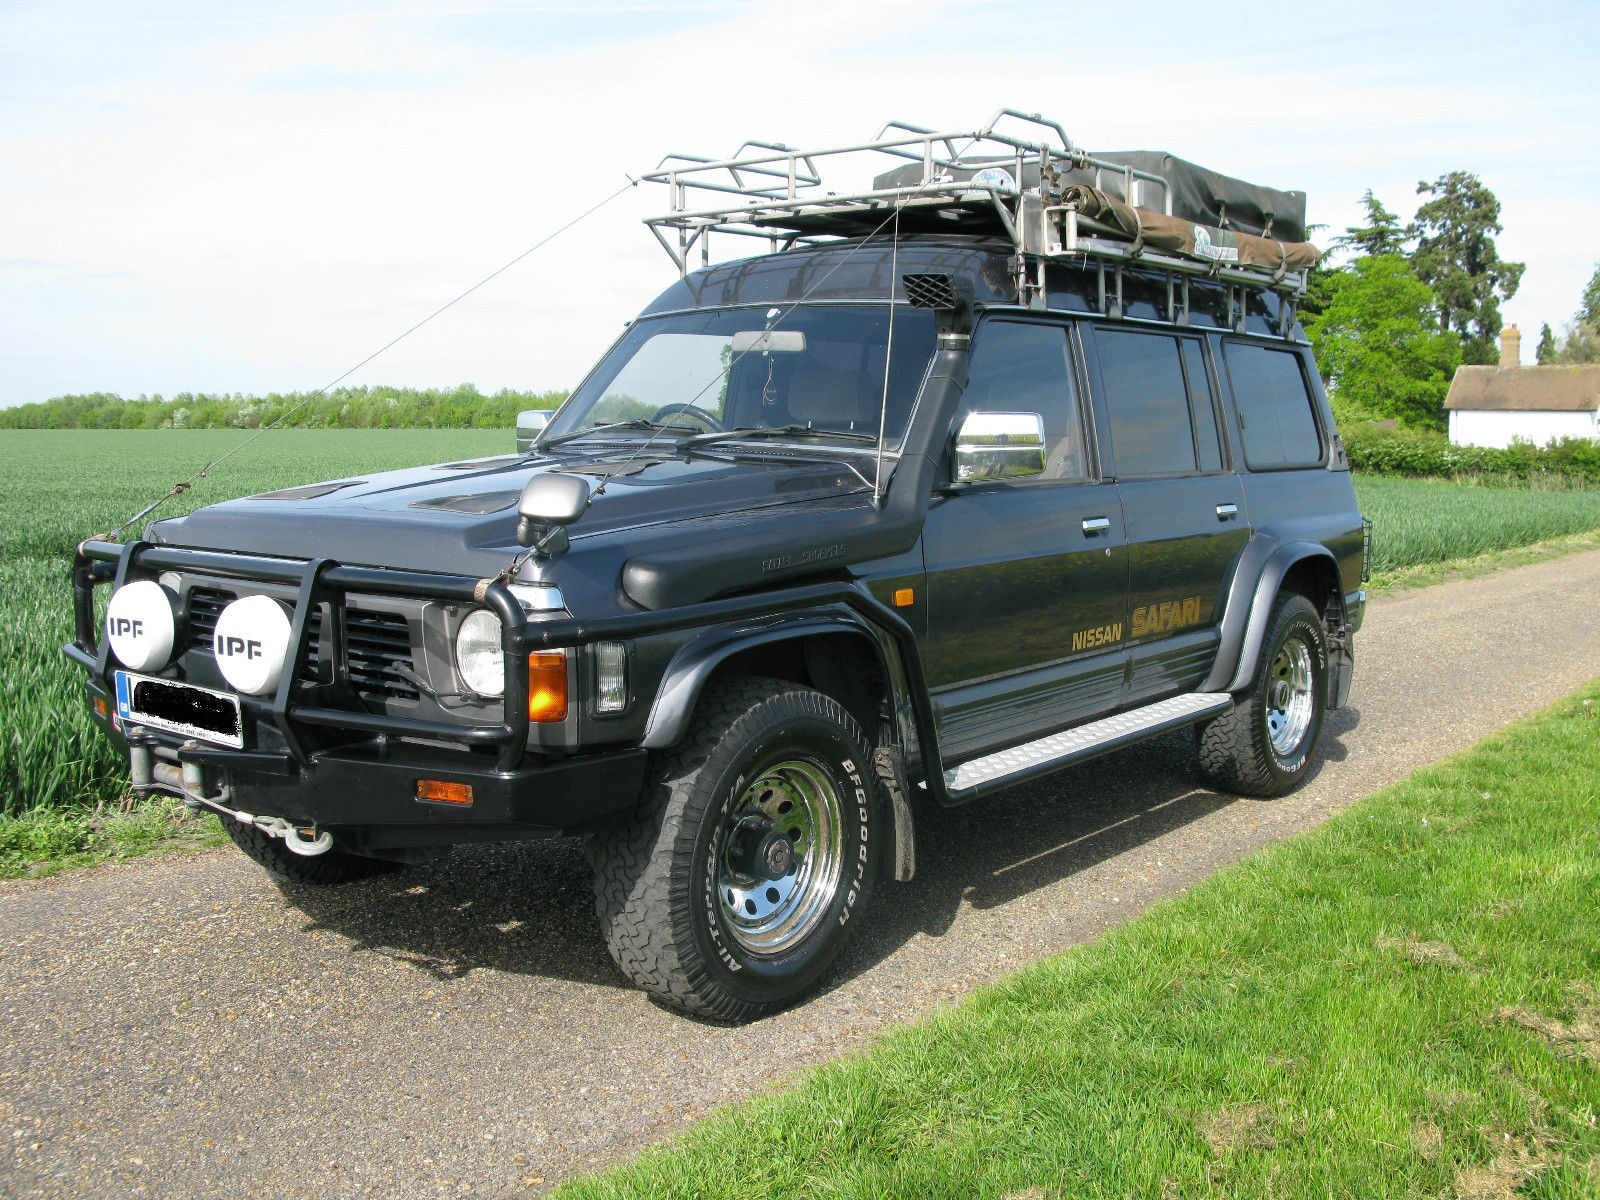 SOLD – Nissan Safari 4.2 Turbo Diesel (Patrol GR SLX) – 1994 Y60 Overland/Expedition Prepared Vehicle – UK